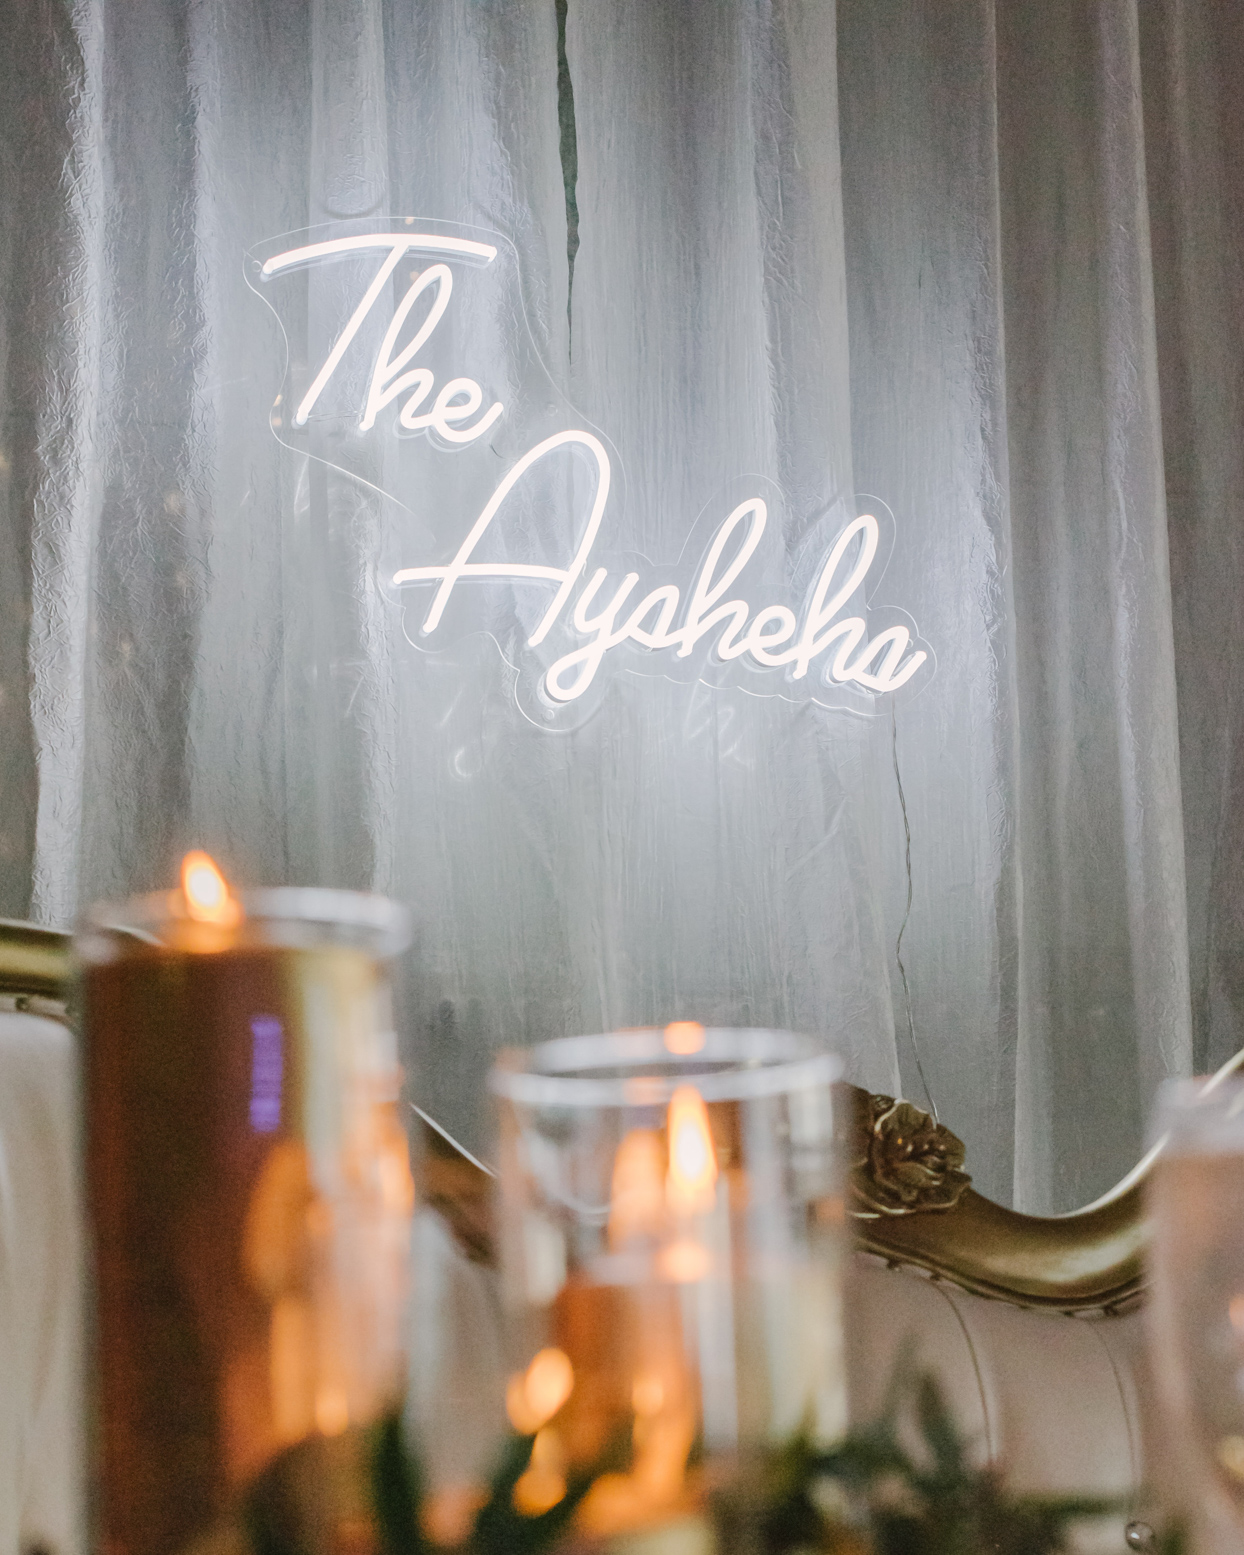 wedding white neon sign with couple's last name